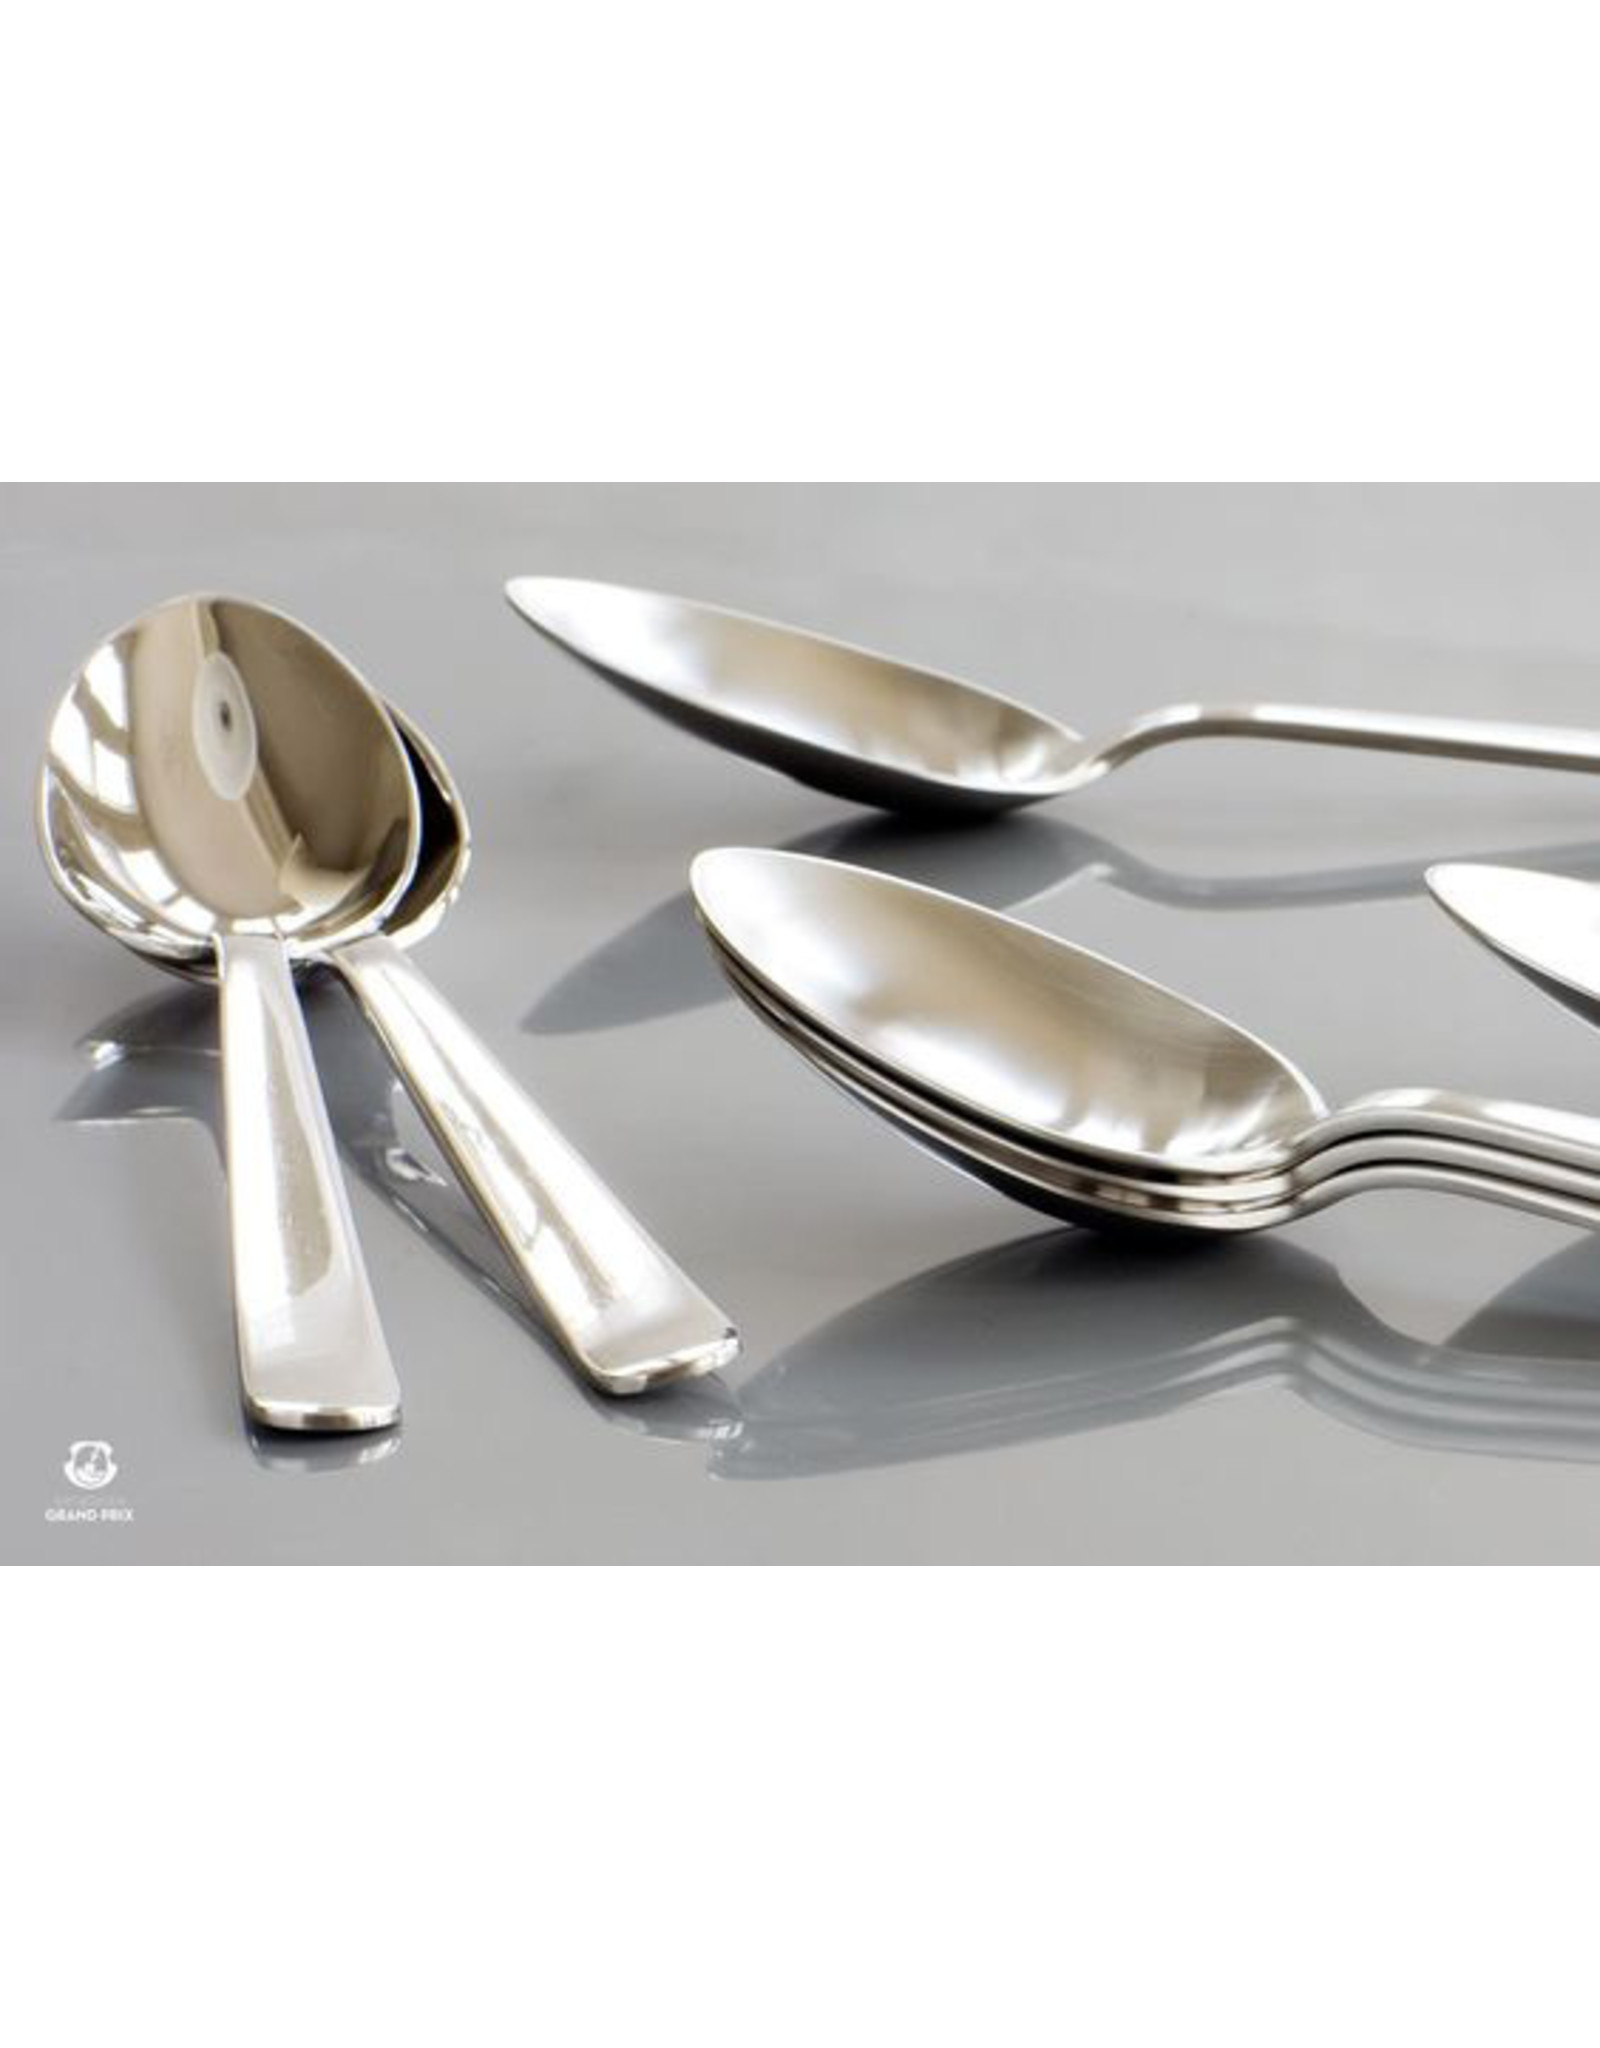 KAY BOJESEN GRAND PRIX STAINLESS STEEL CUTLERY SET OF 6 SOUP/ PUDDING SPOONS MATTE FINISH